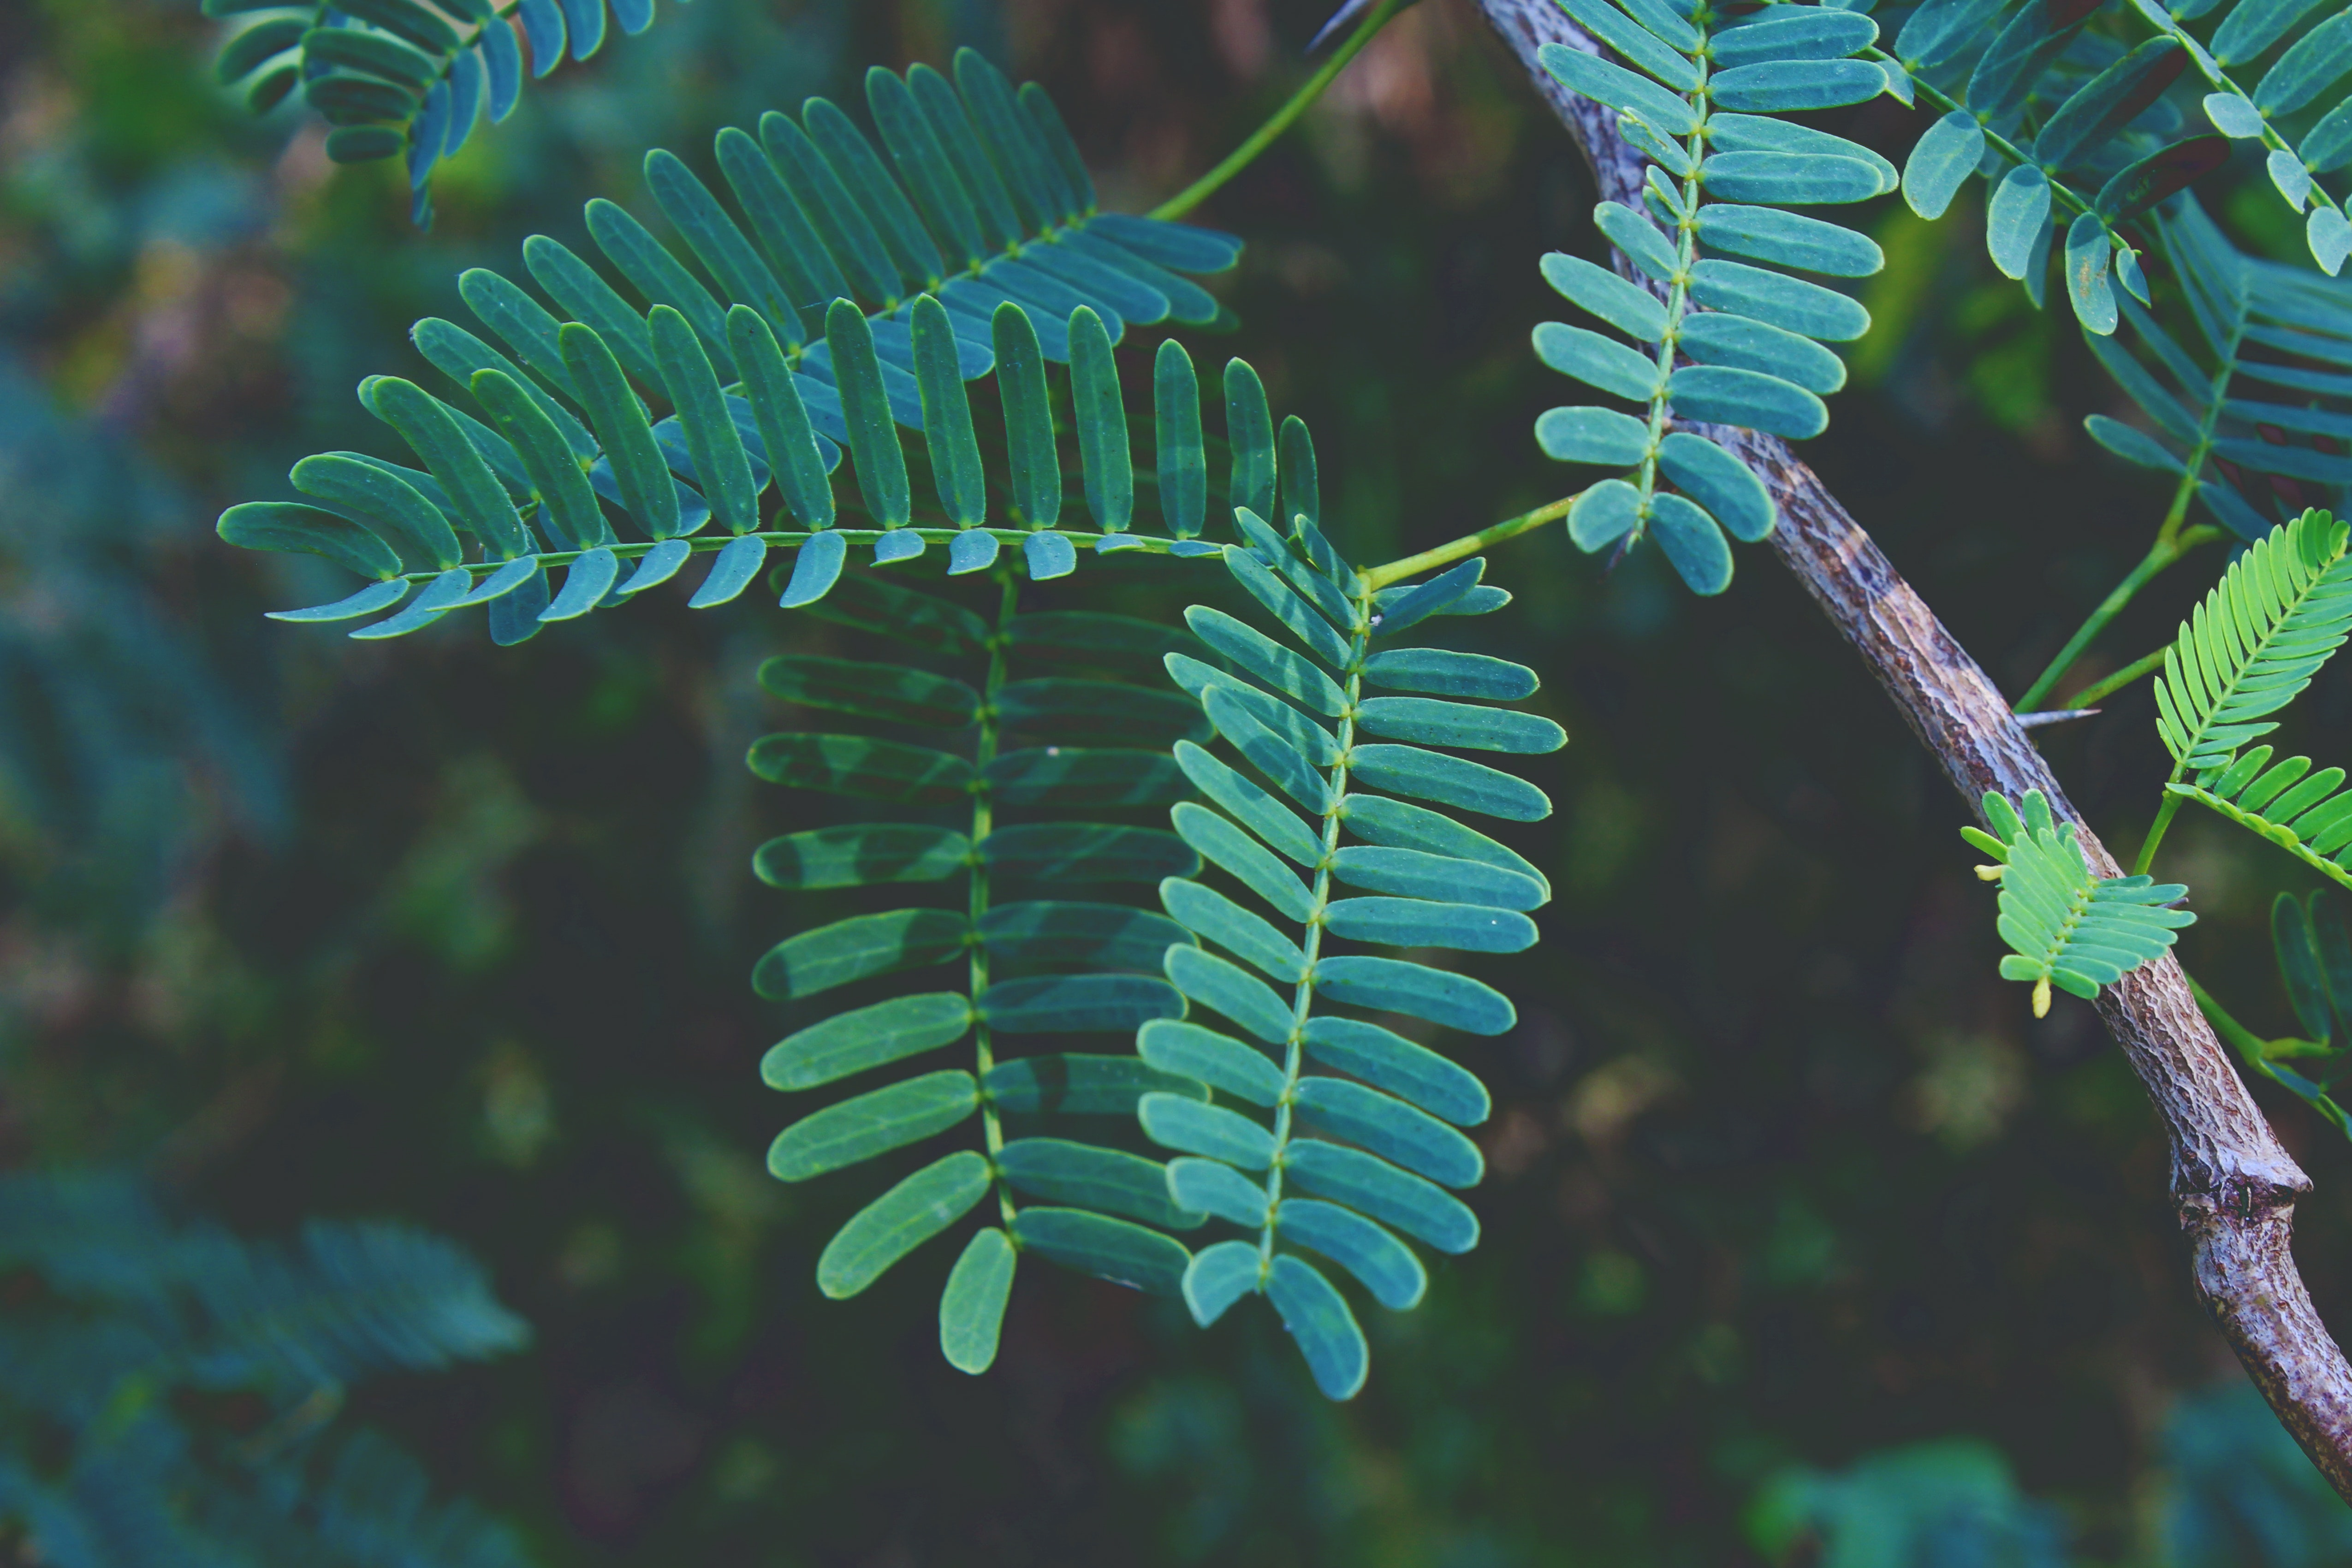 Selective focus photography of green fern plant